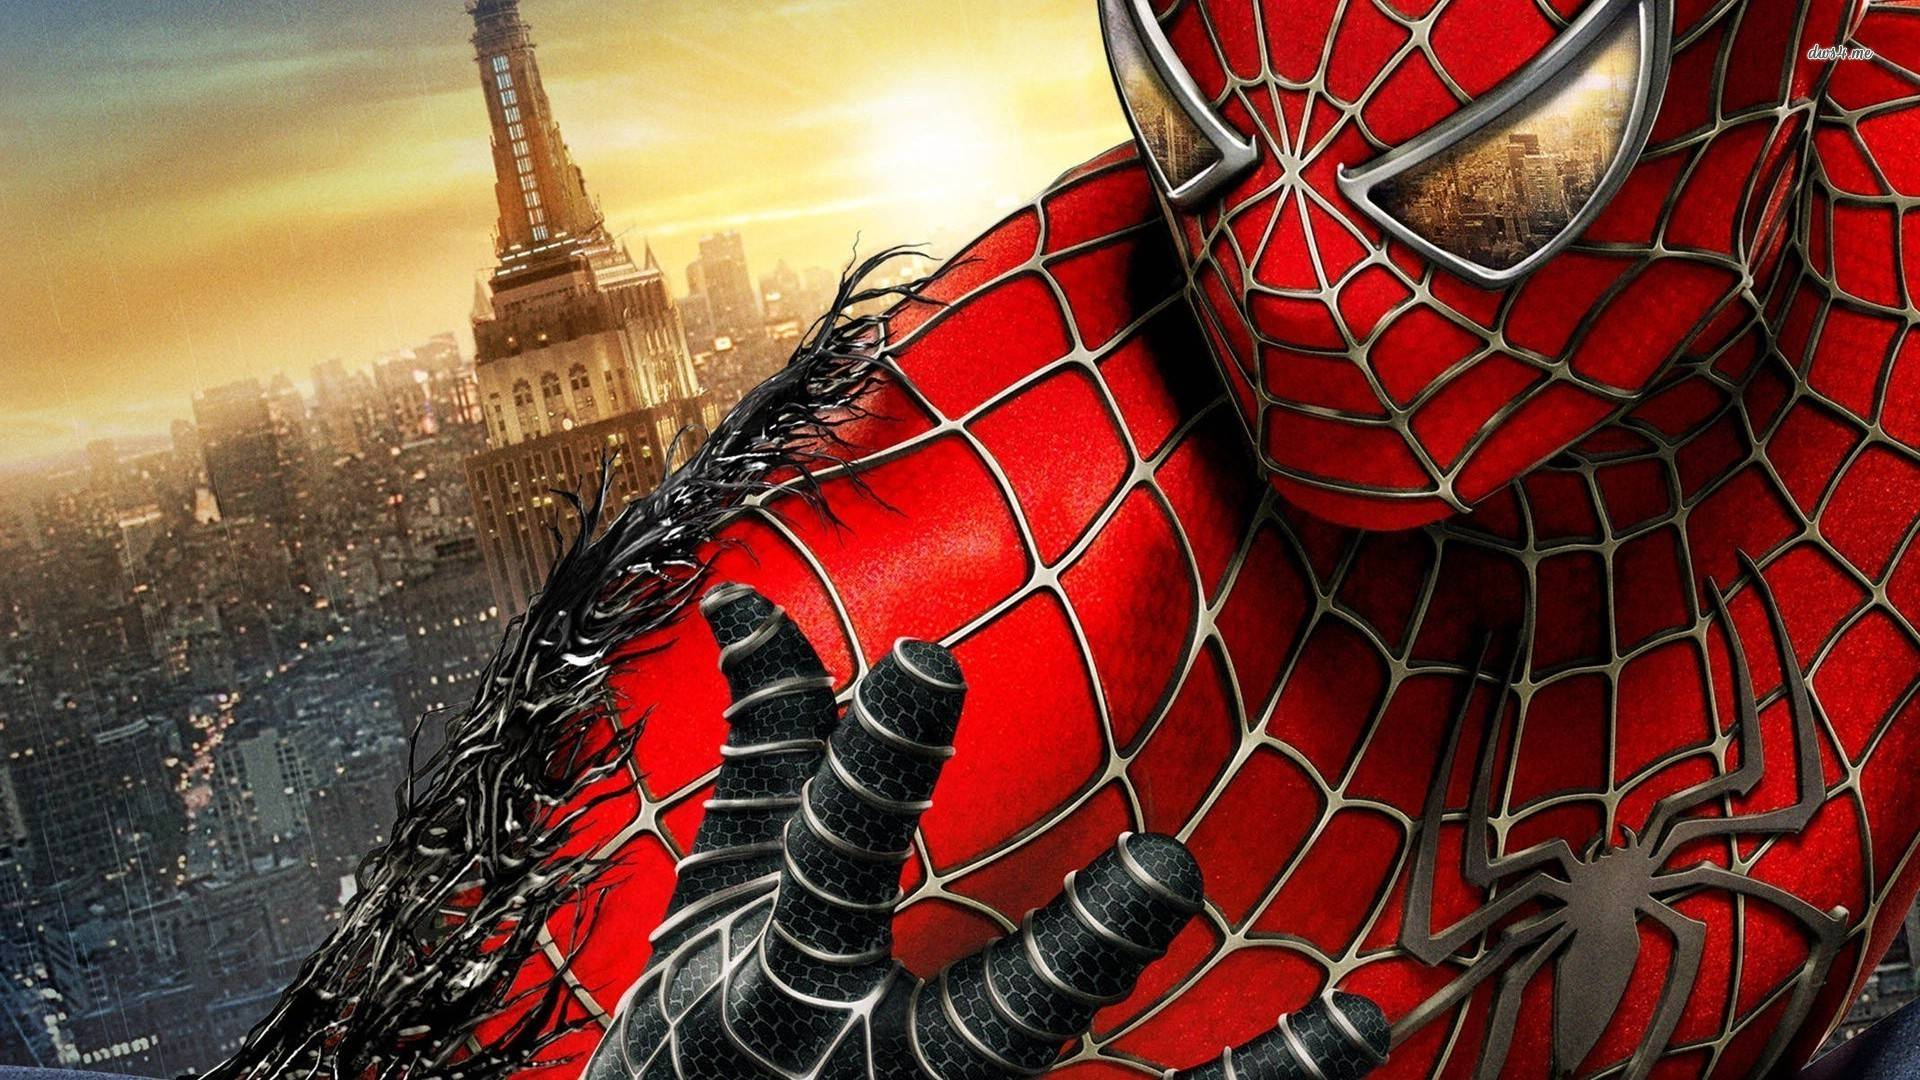 Spiderman Hd Image – download HD image